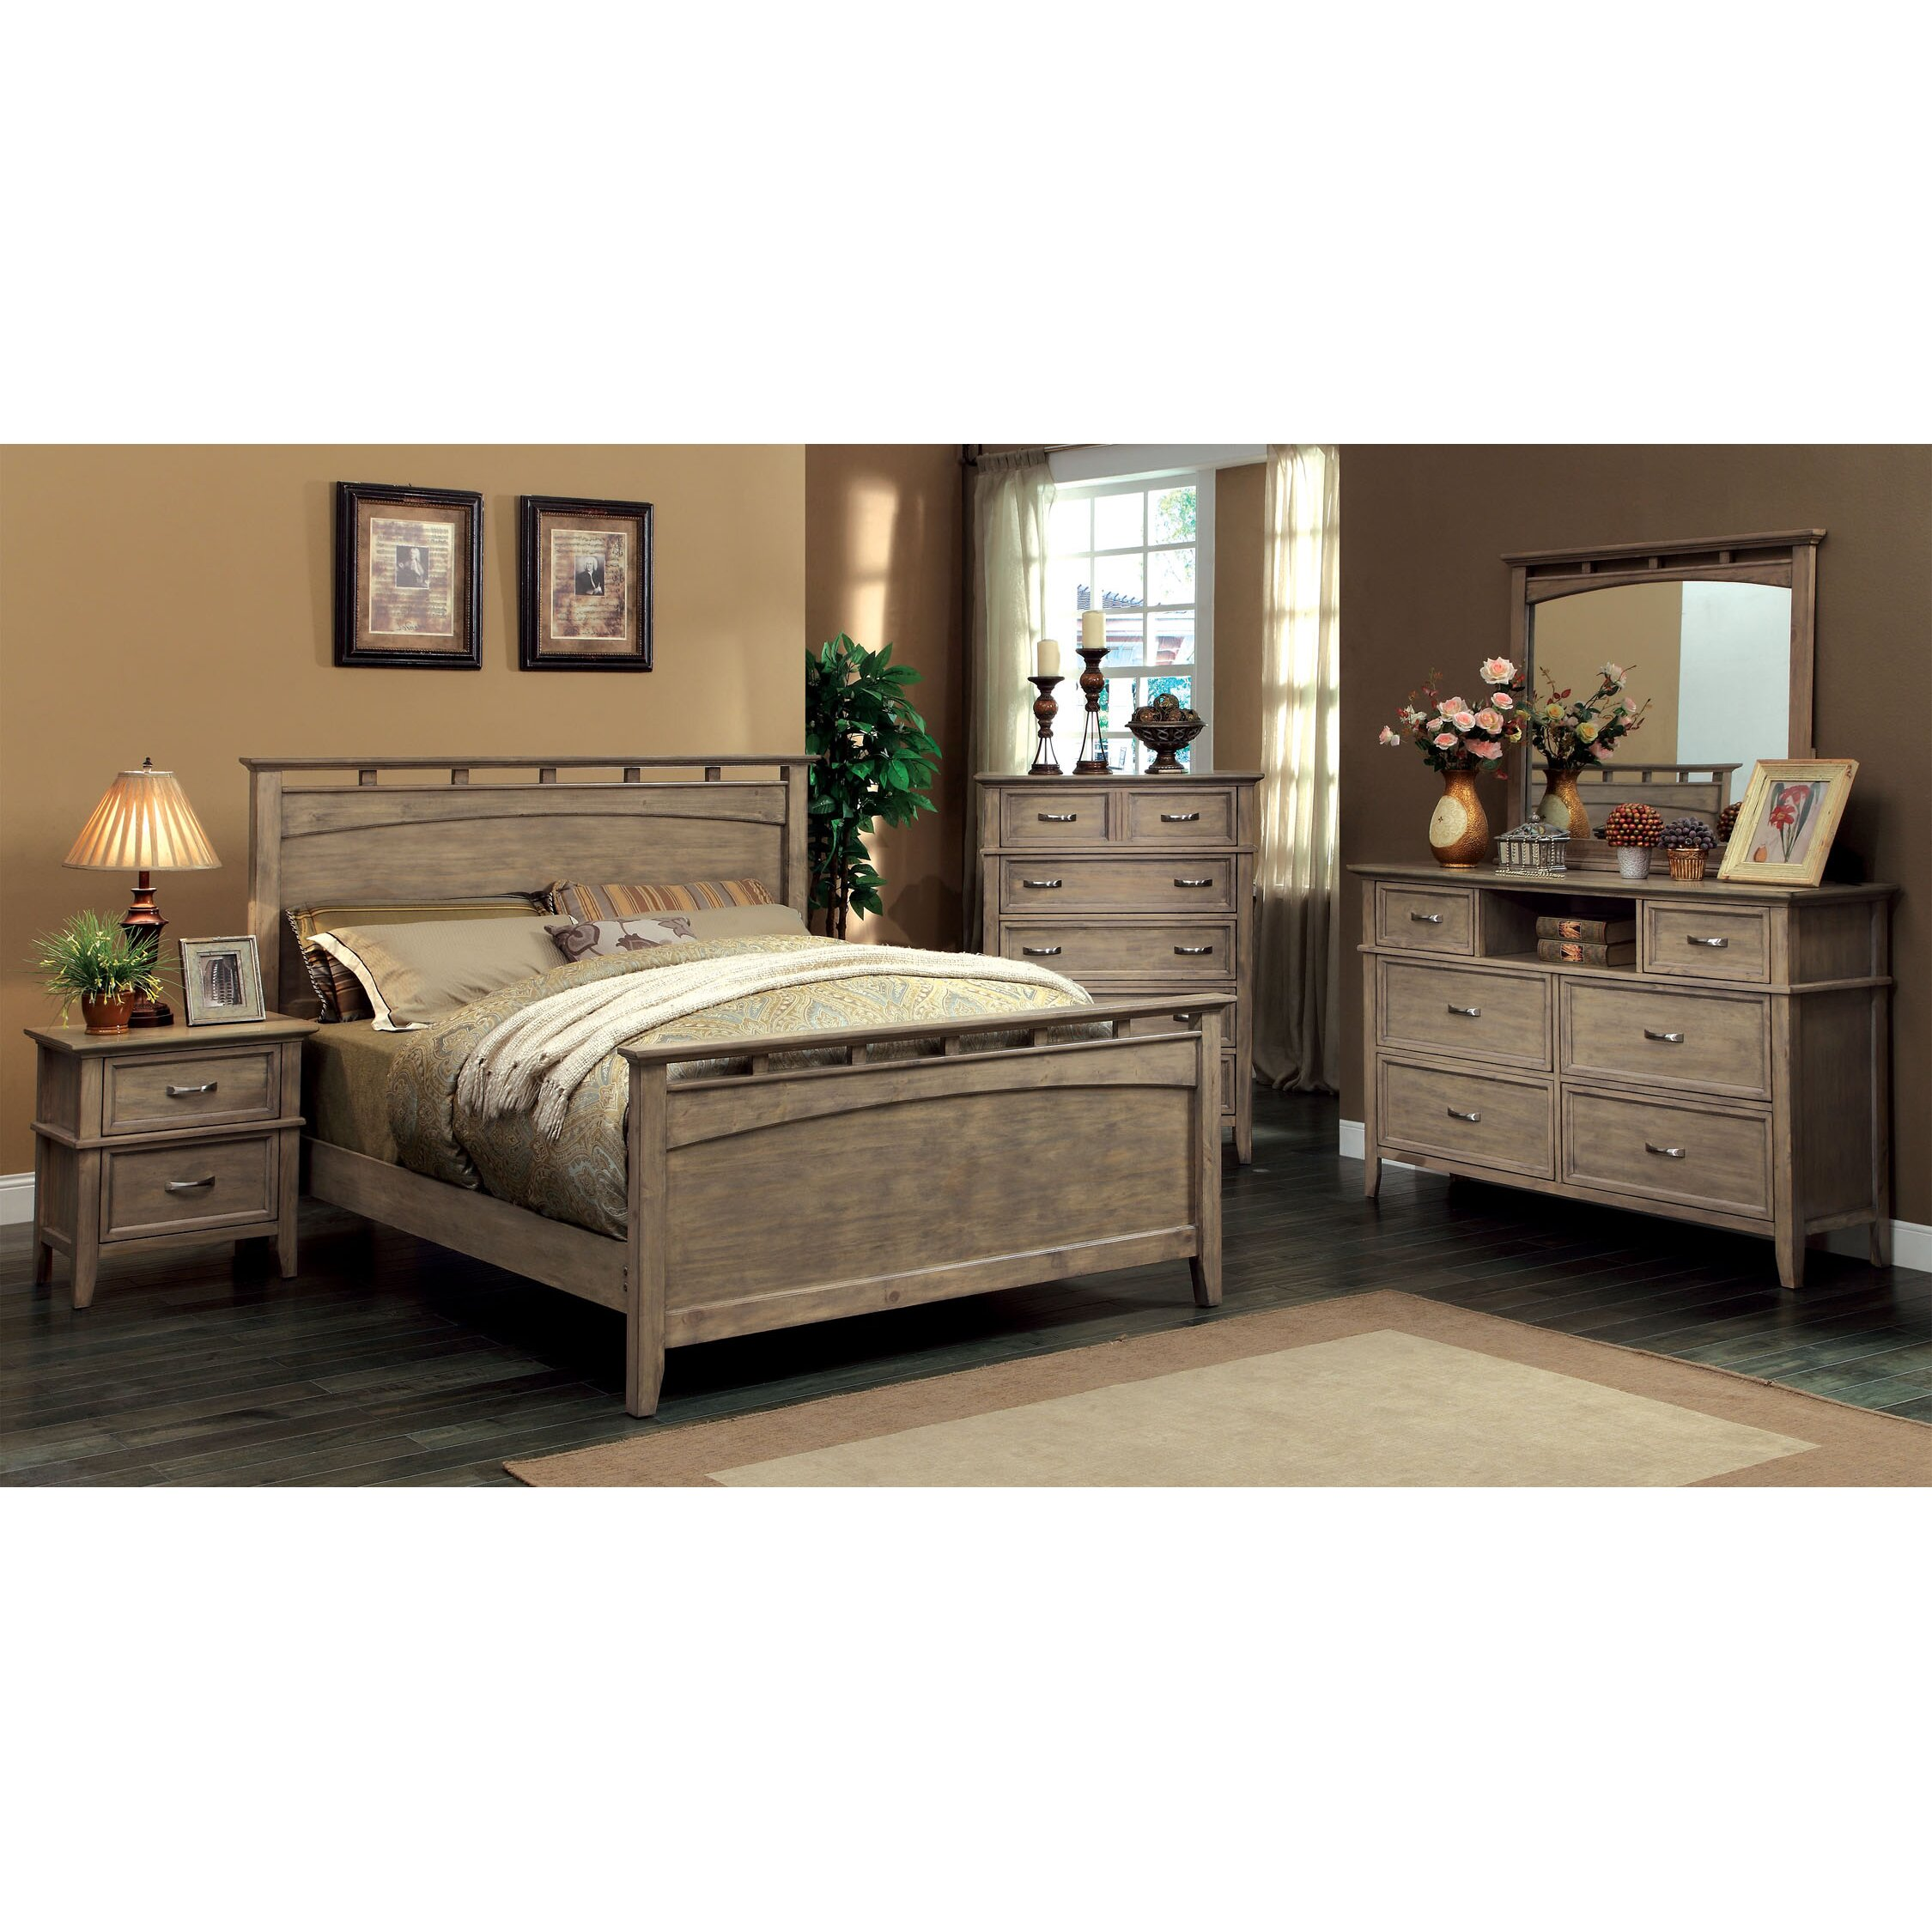 Beachcrest home 2 drawer nightstand reviews wayfair for Crest home designs bedding